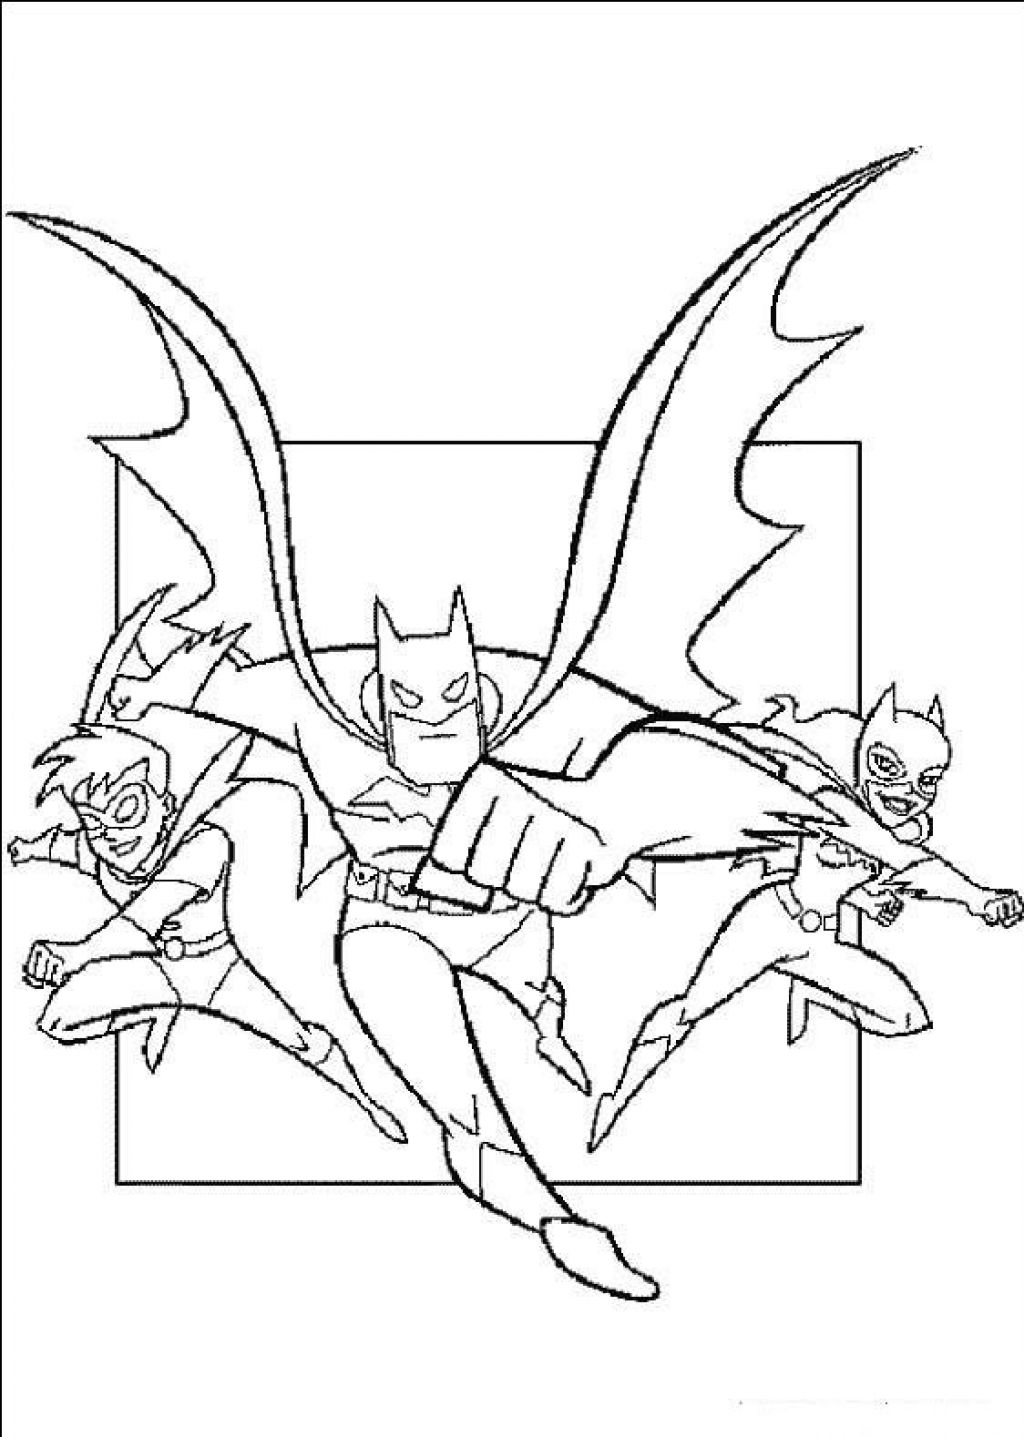 coloring pages batman printable logo - photo#25